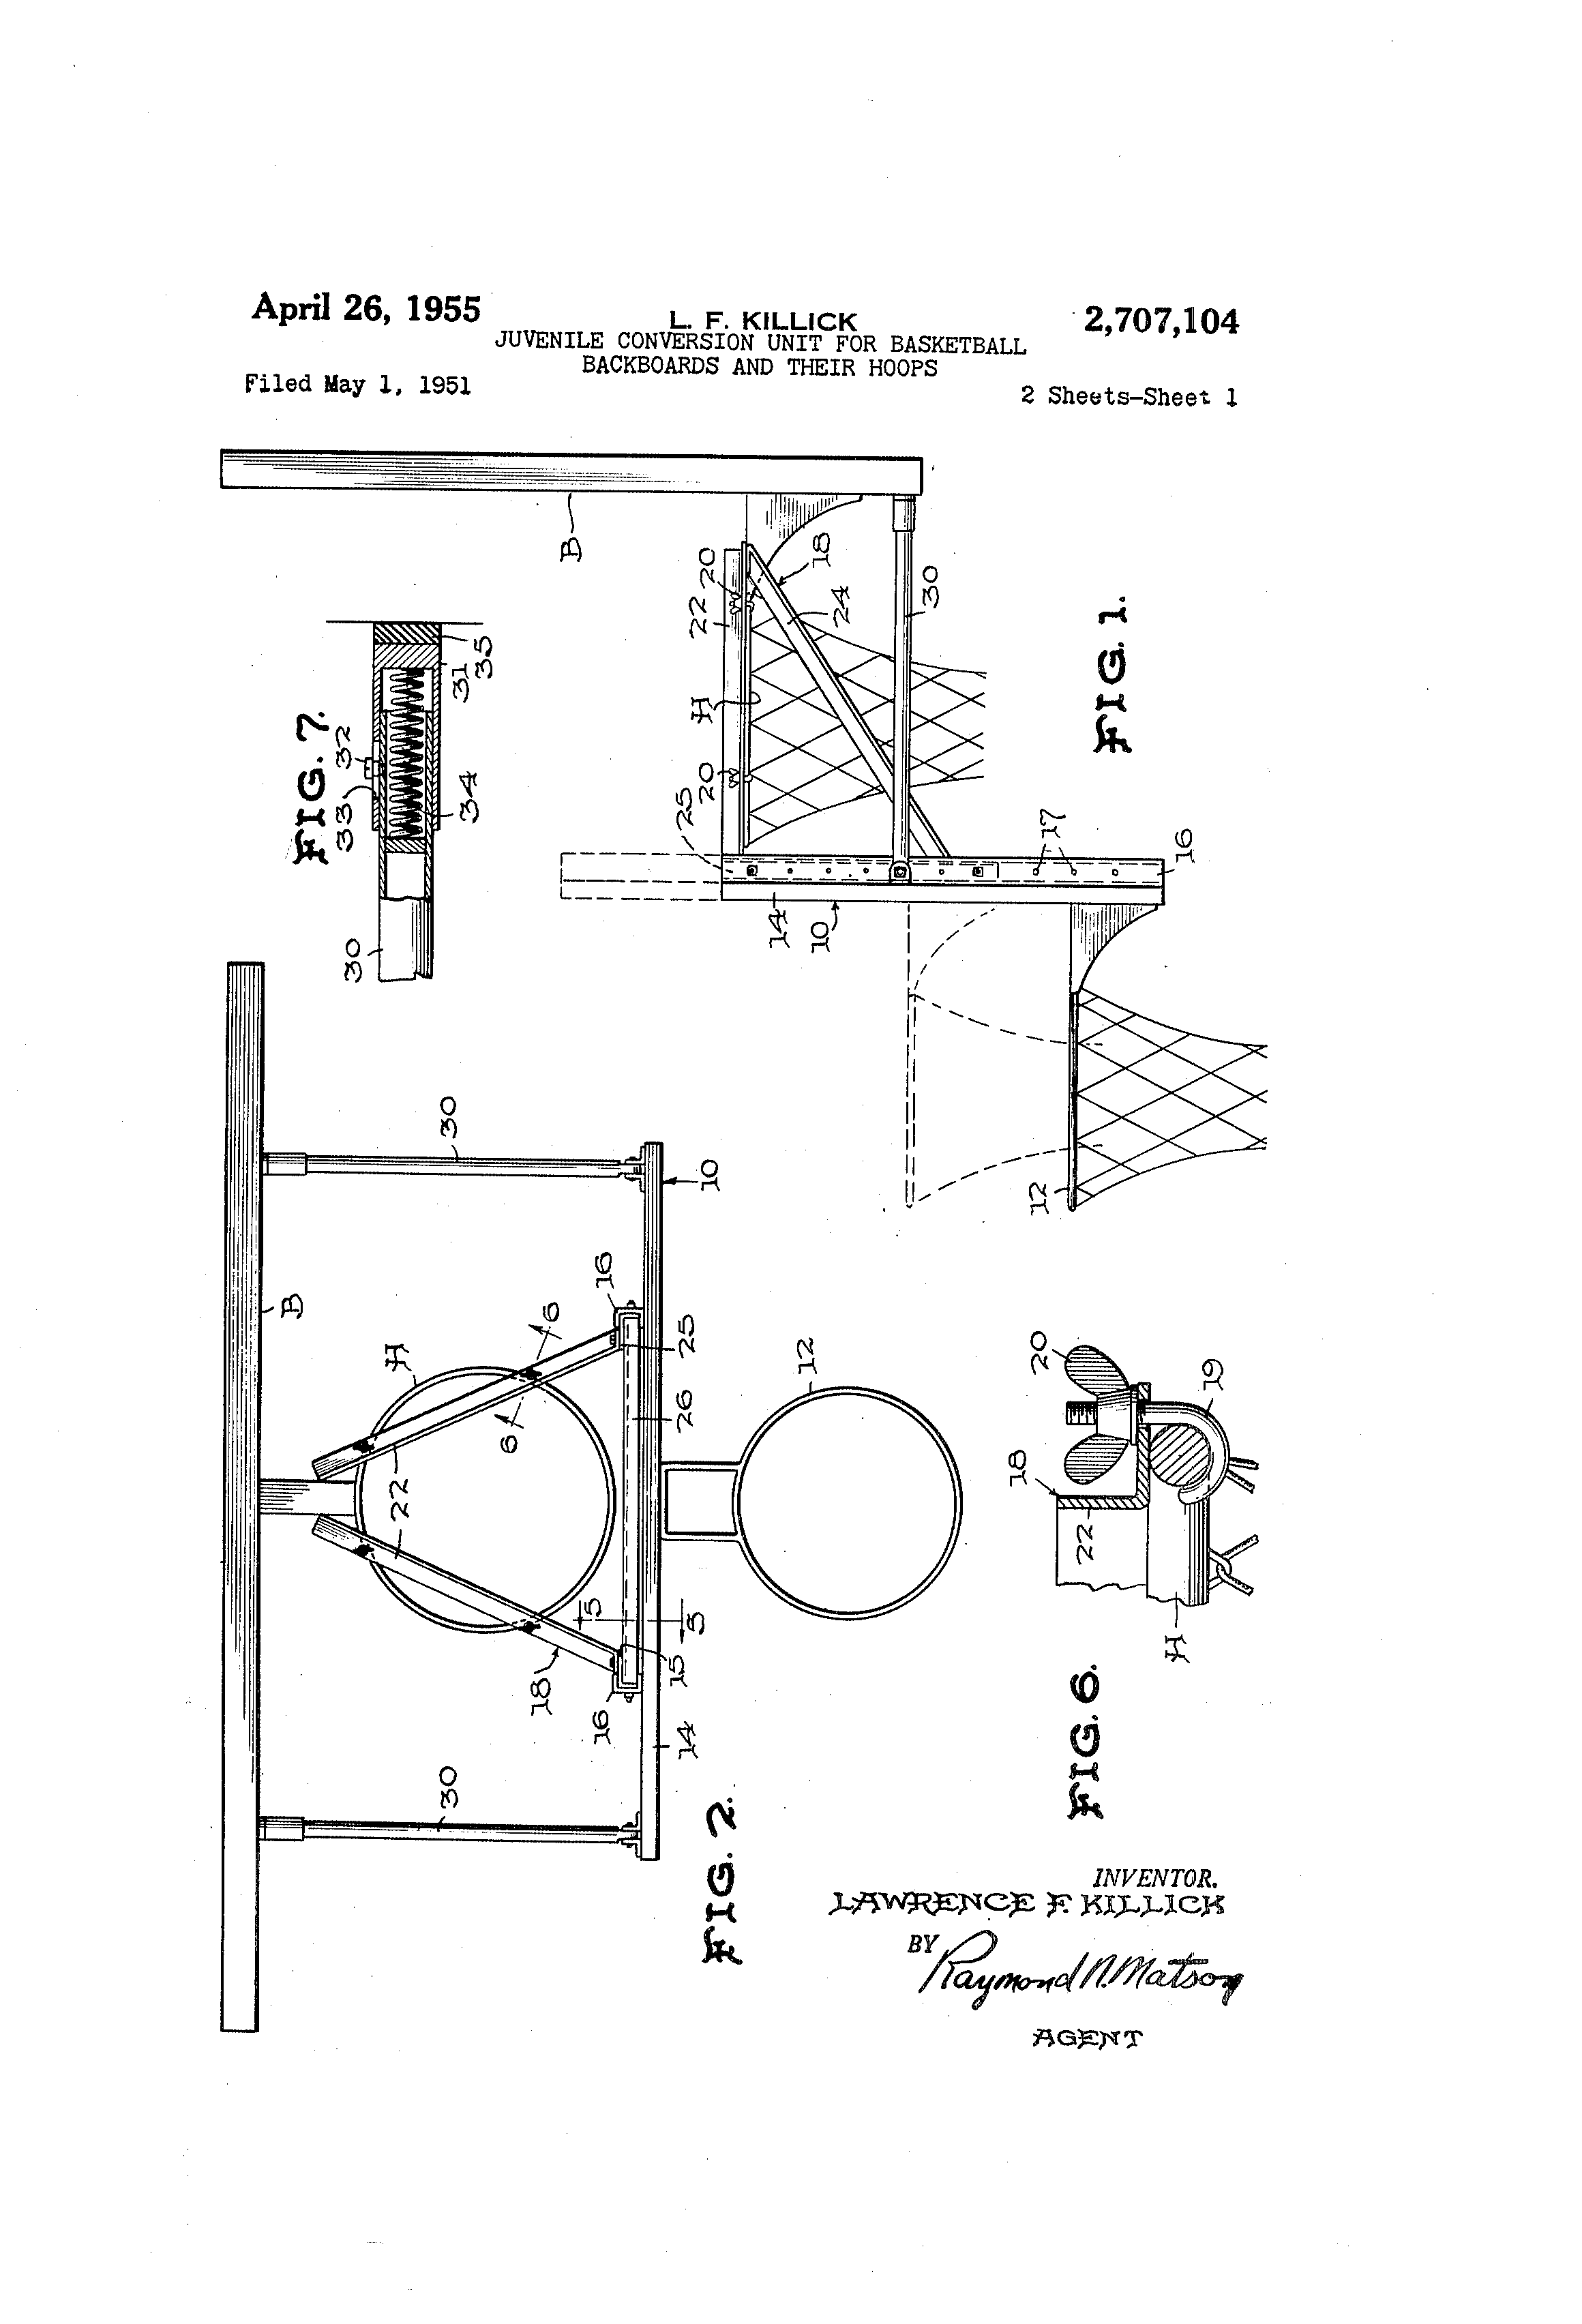 unit for basketball backboards and their hoops - Google Patents - Improve  your